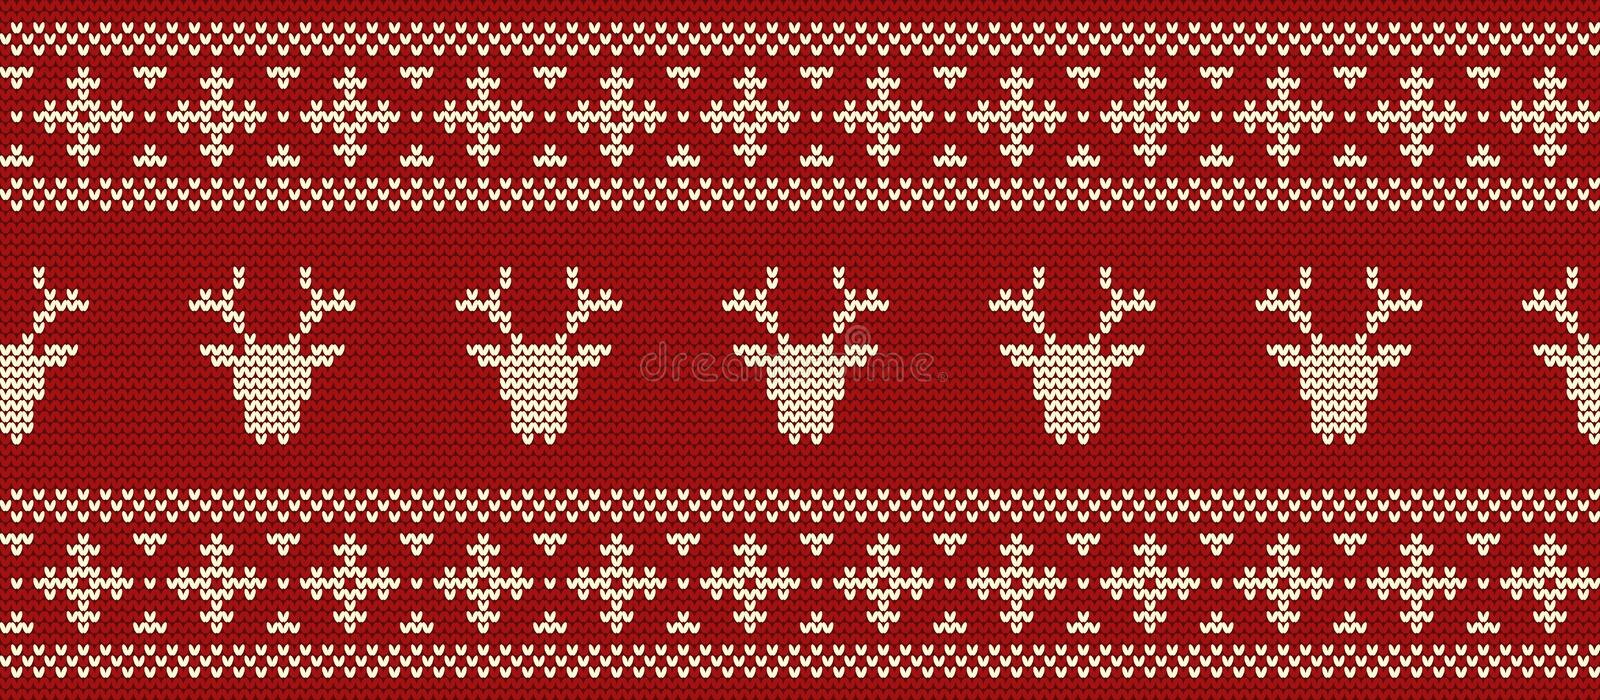 Seamless border. Knitted pattern with deer`s heads on a red background vector illustration